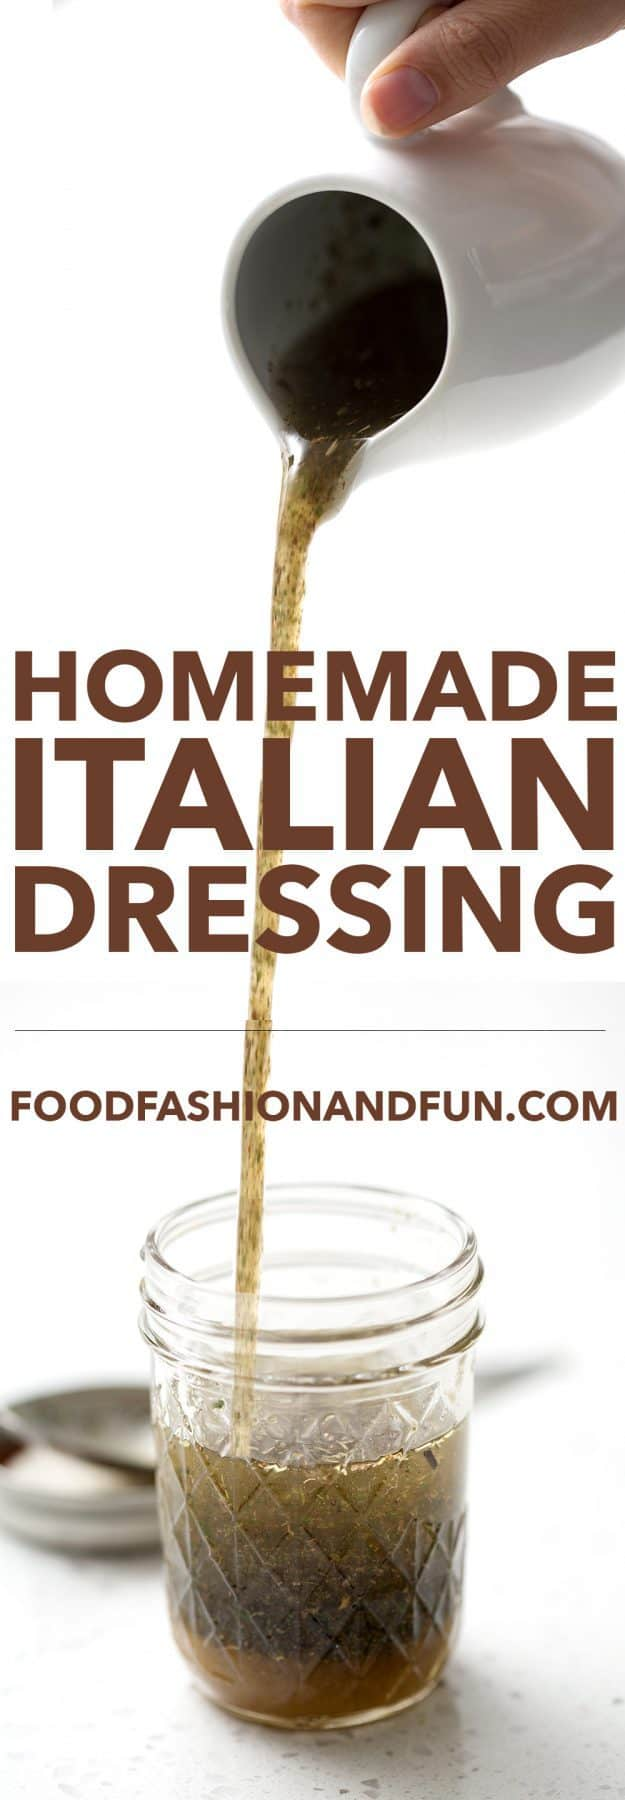 Easy Italian Dressing recipe made of pantry staples. With this recipe, you'll never have to buy store-bought again. This recipe is allergy friendly (gluten, dairy, seafood, nut, egg, and soy free) and suits the autoimmune protocol, paleo and vegan diet.